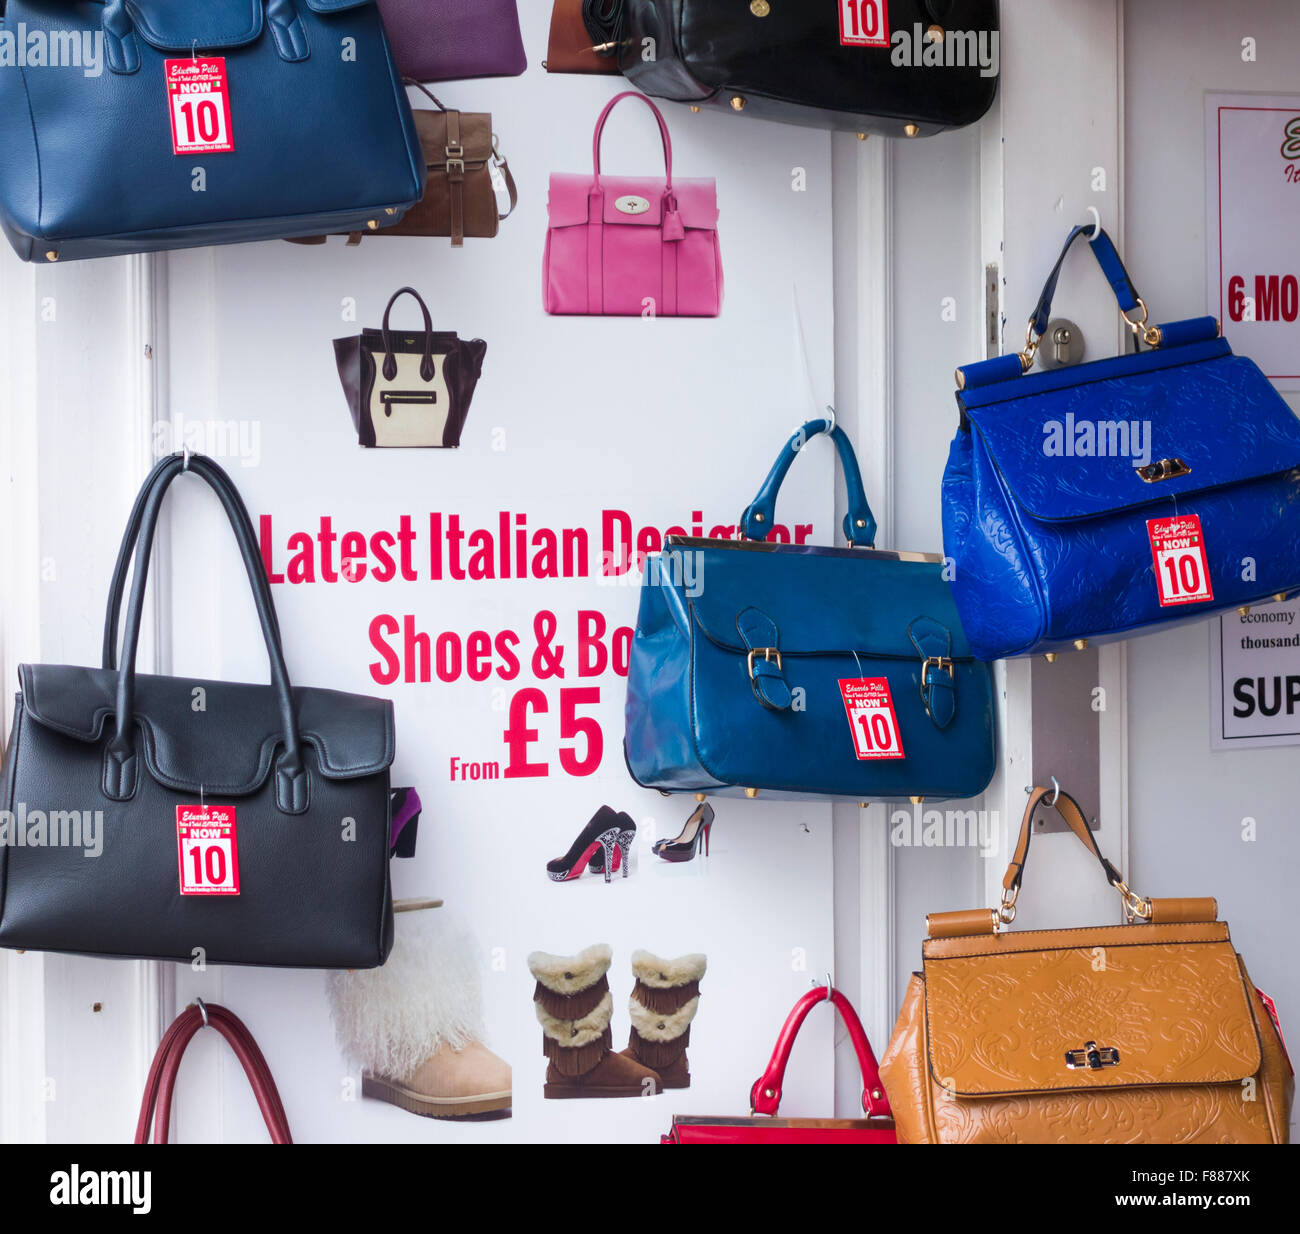 d1bb1b16 'Latest Italian designer shoes and bags from £5' in high street shop in '